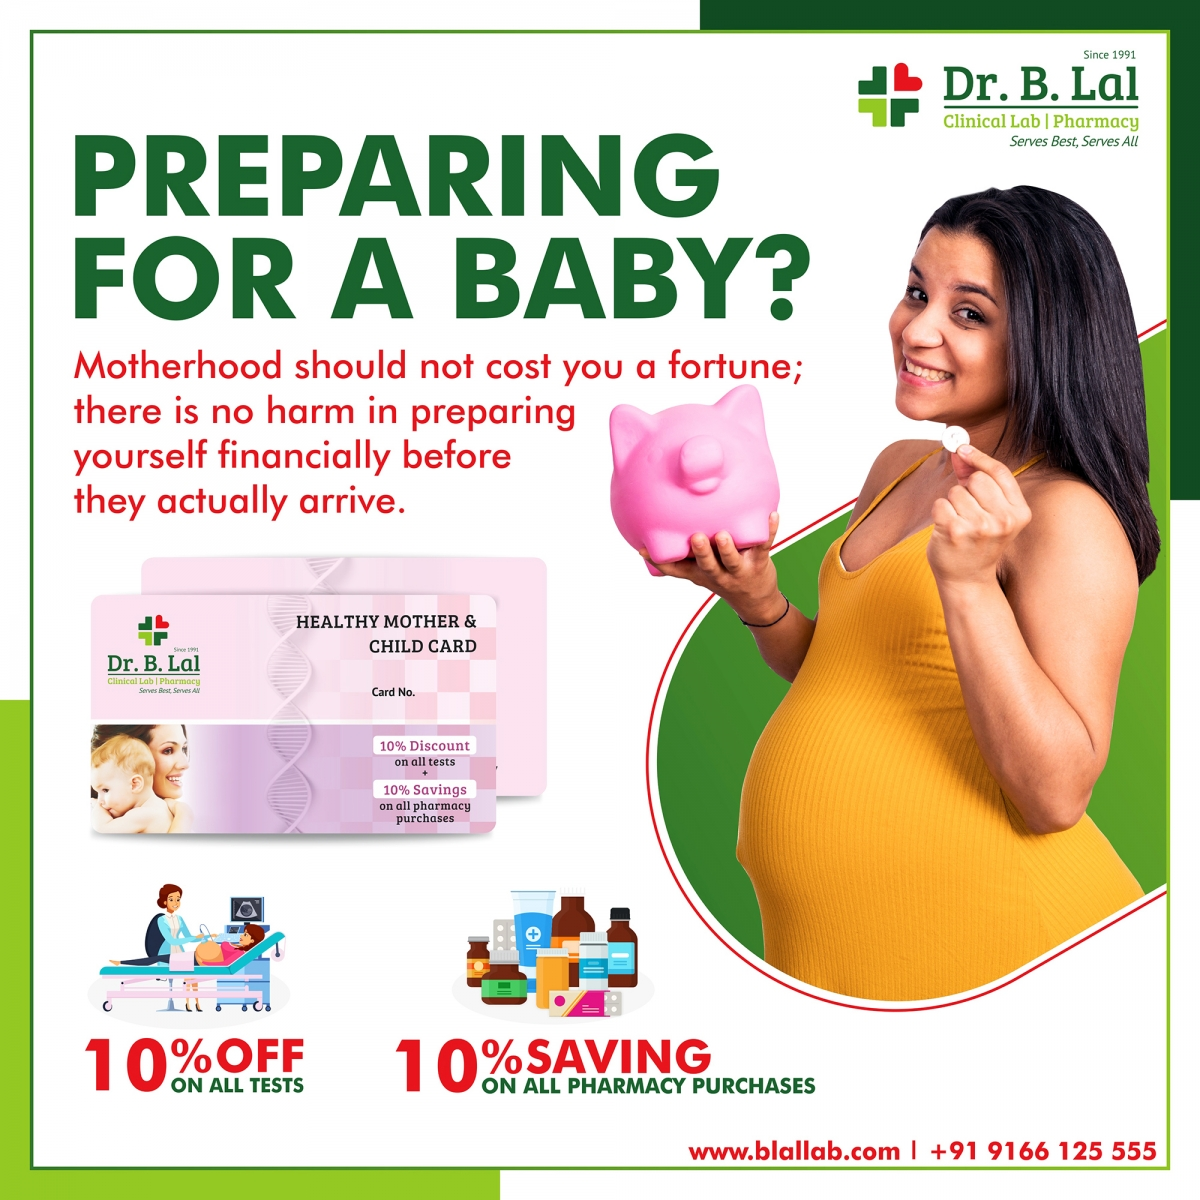 Healthy Mother & Child Card for pregnant women in Jaipur, Rajasthan